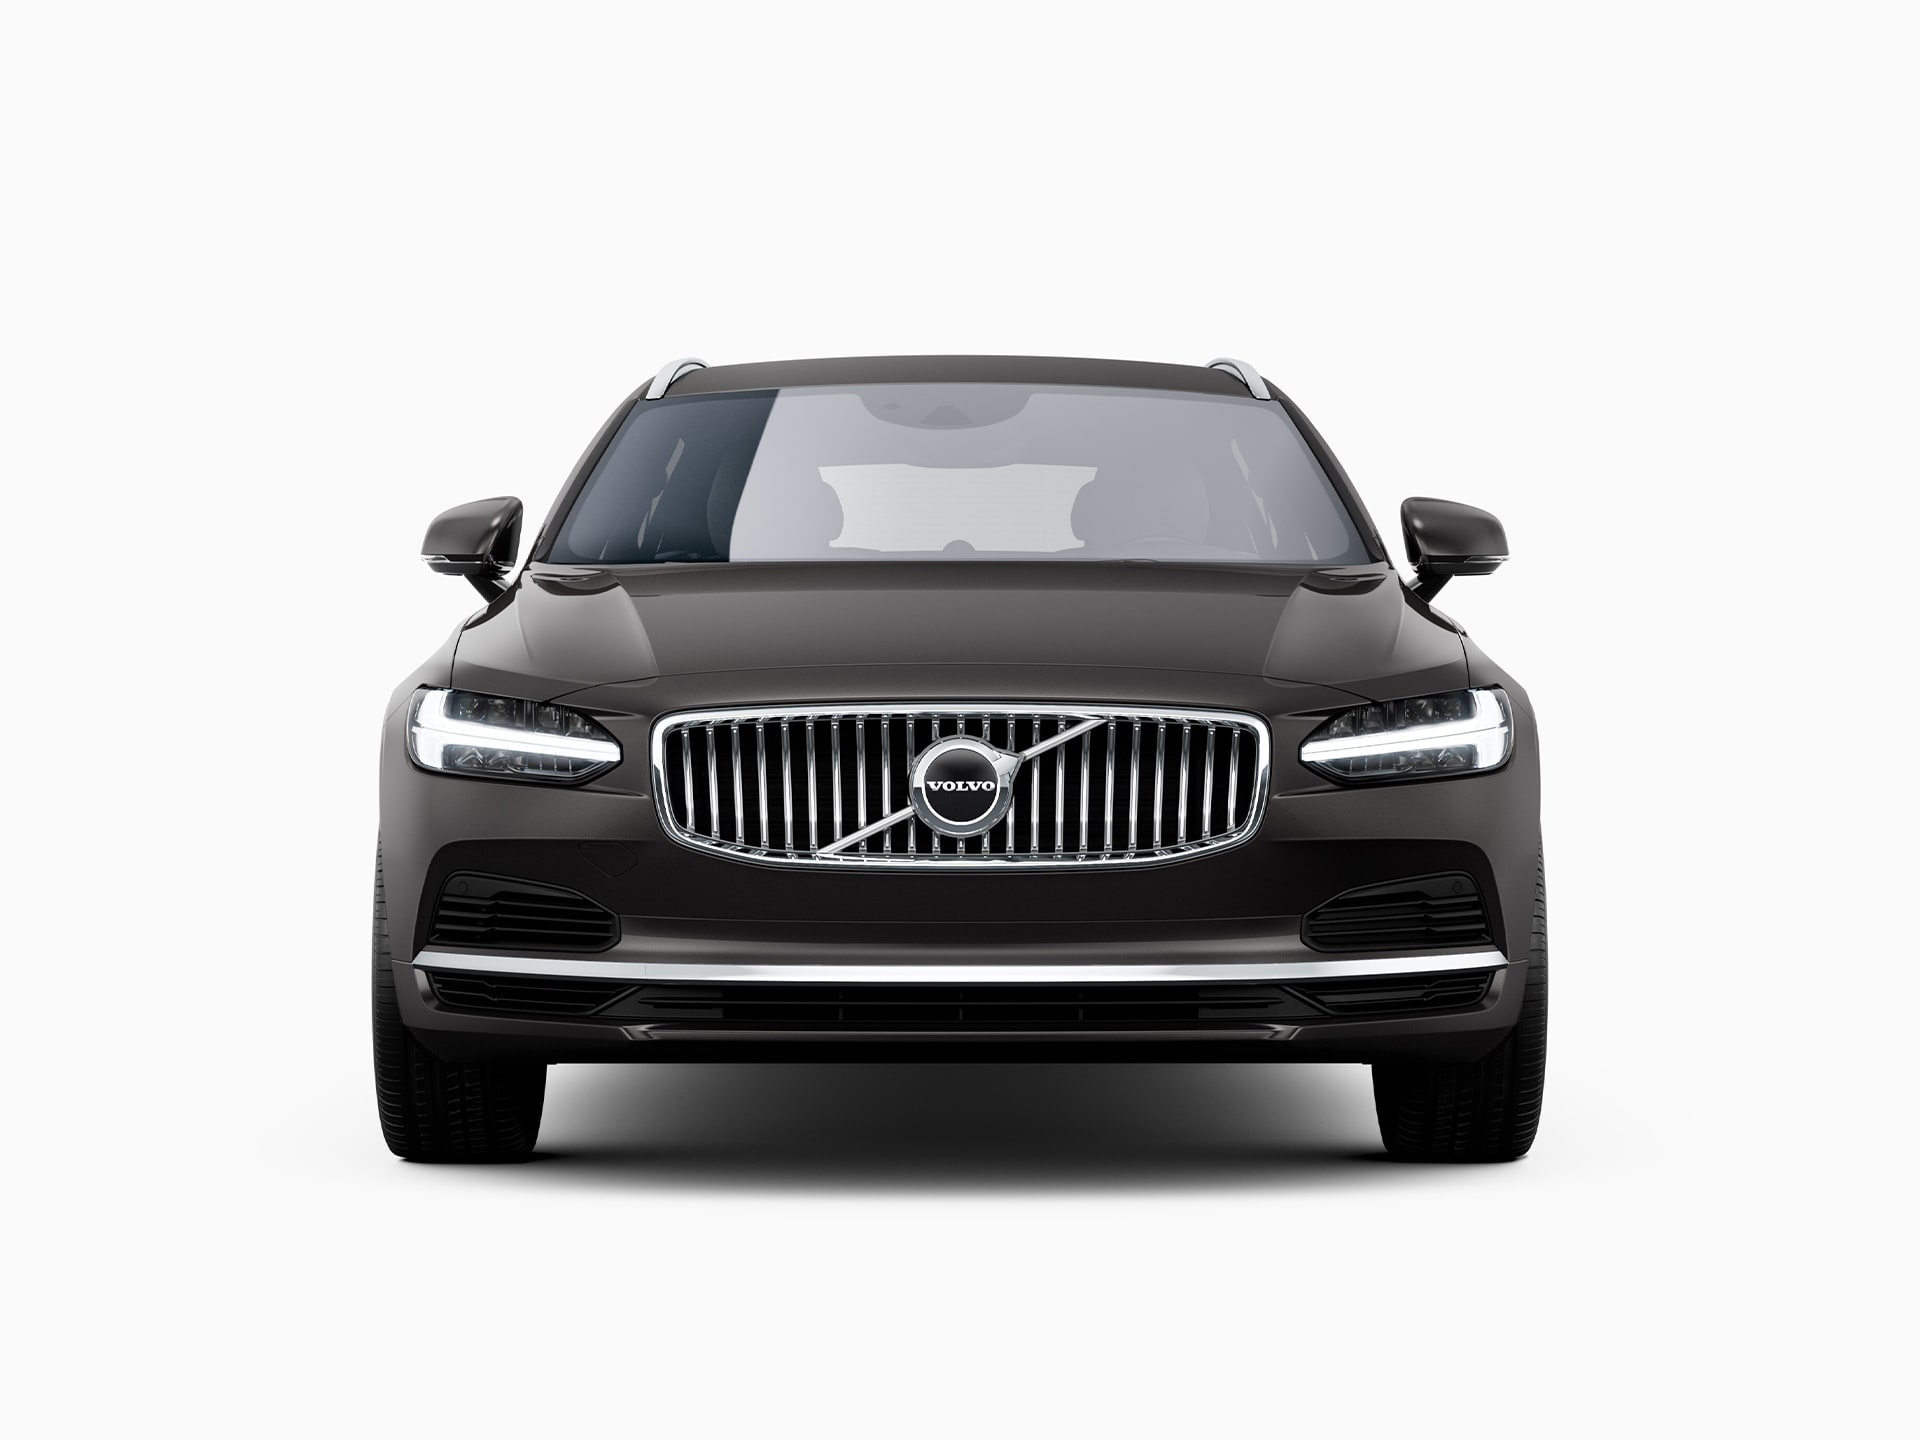 The front of a Volvo V90 Recharge plug-in hybrid.